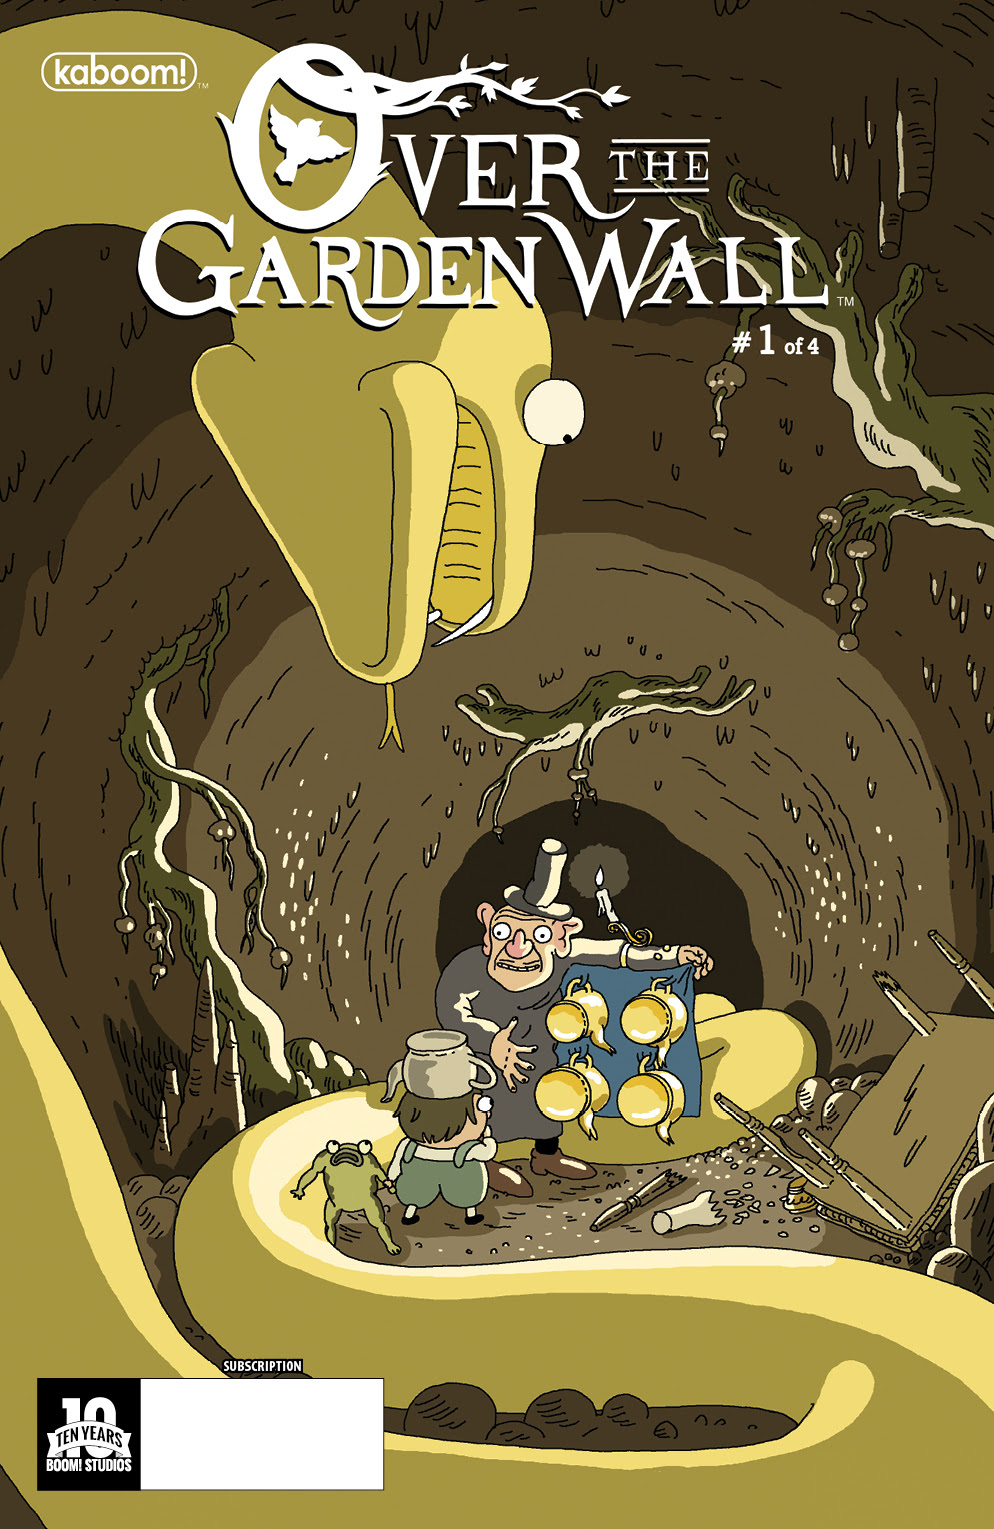 Over the garden wall comic release : Sid the science kid season 1 ...